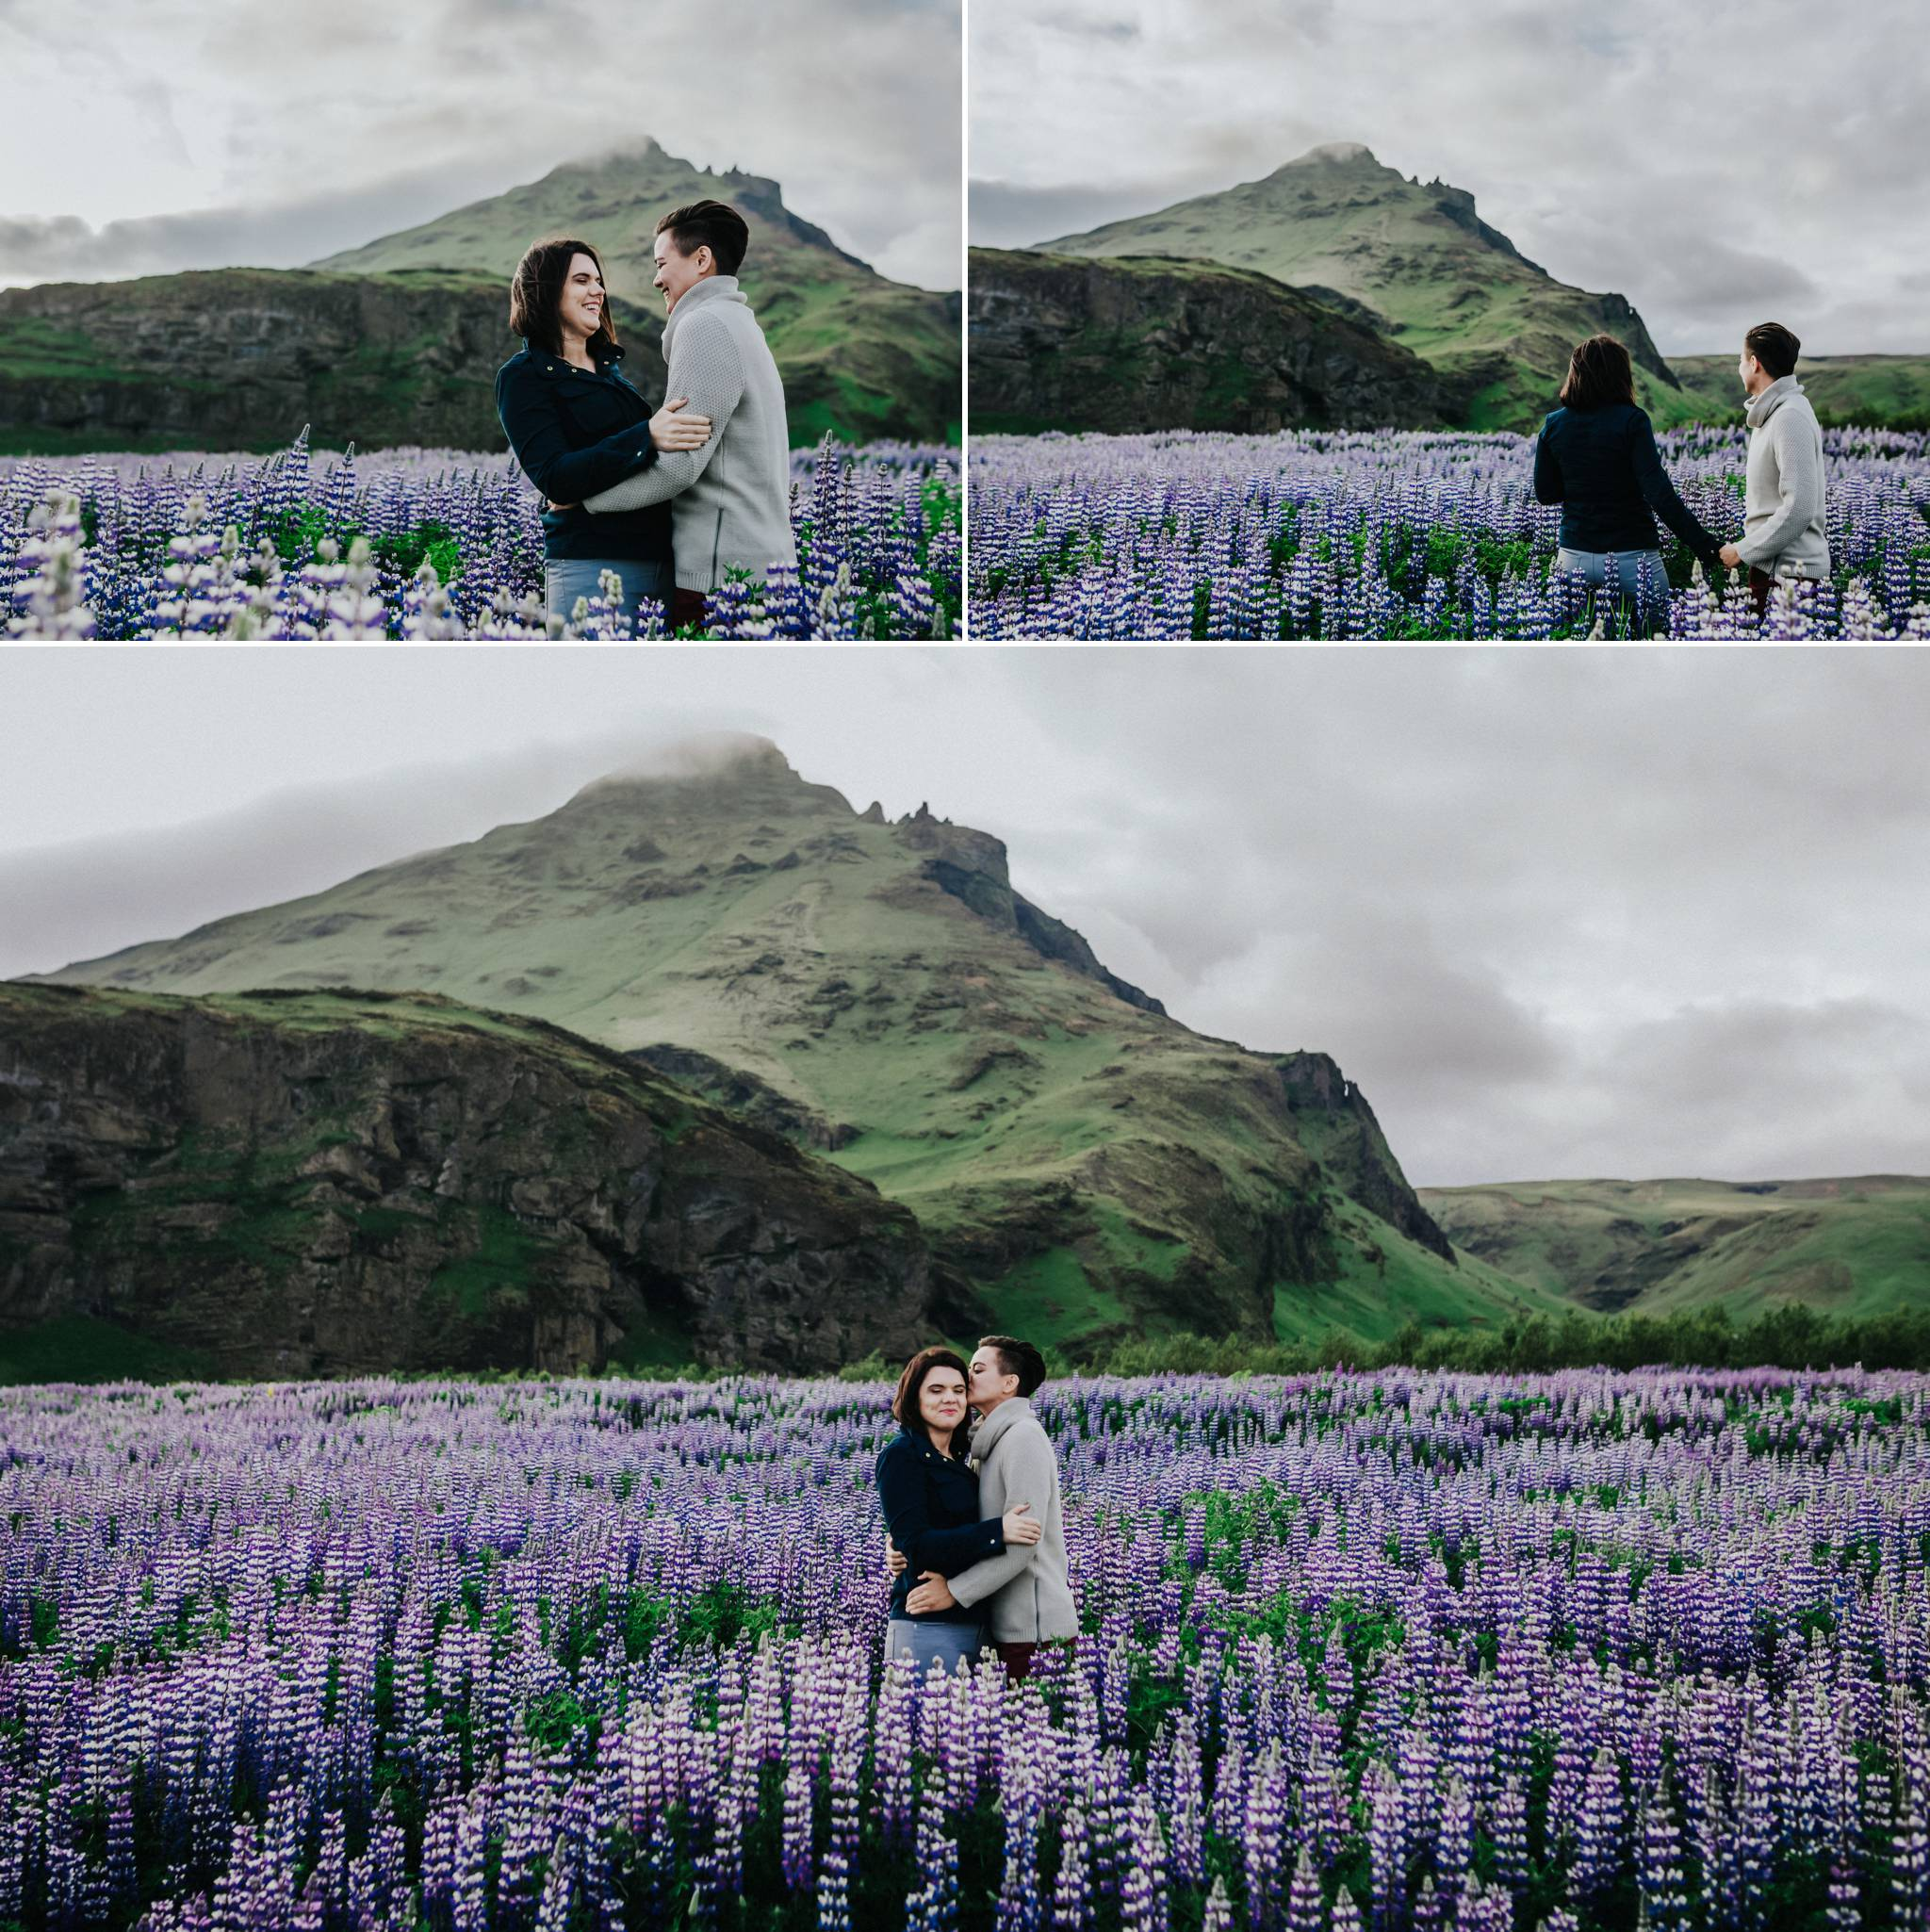 iceland-engagement-photography 5.jpg